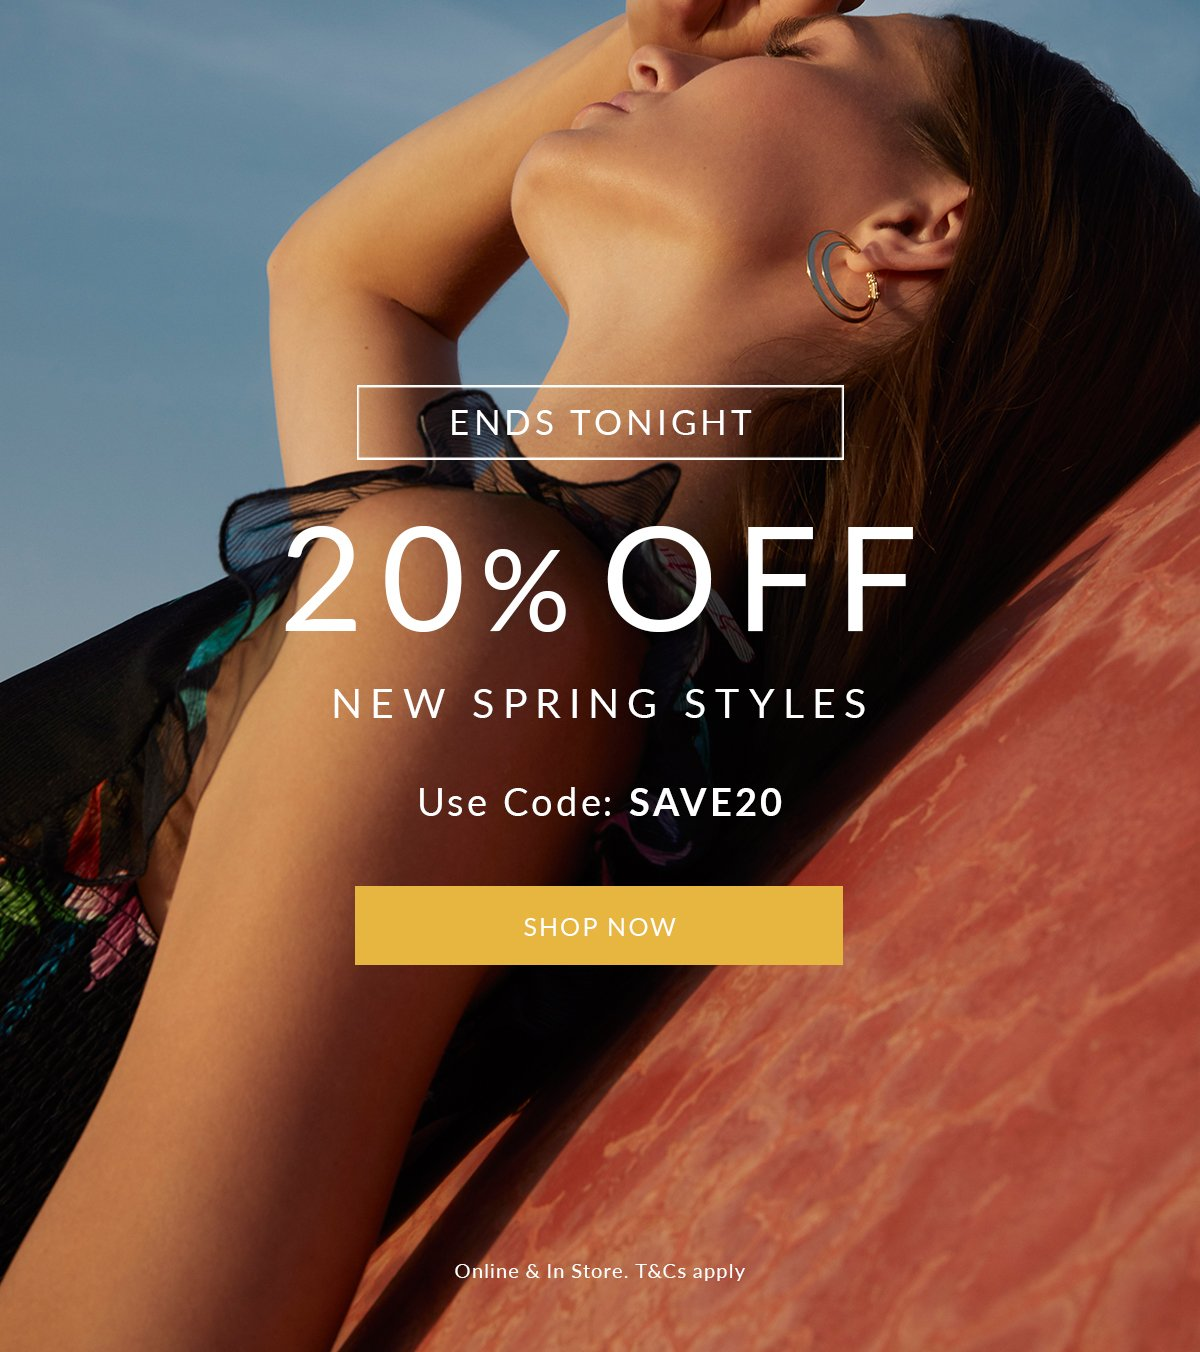 20% Off New Spring Styles Ends Tonight | use code: SAVE20 | Shop Now